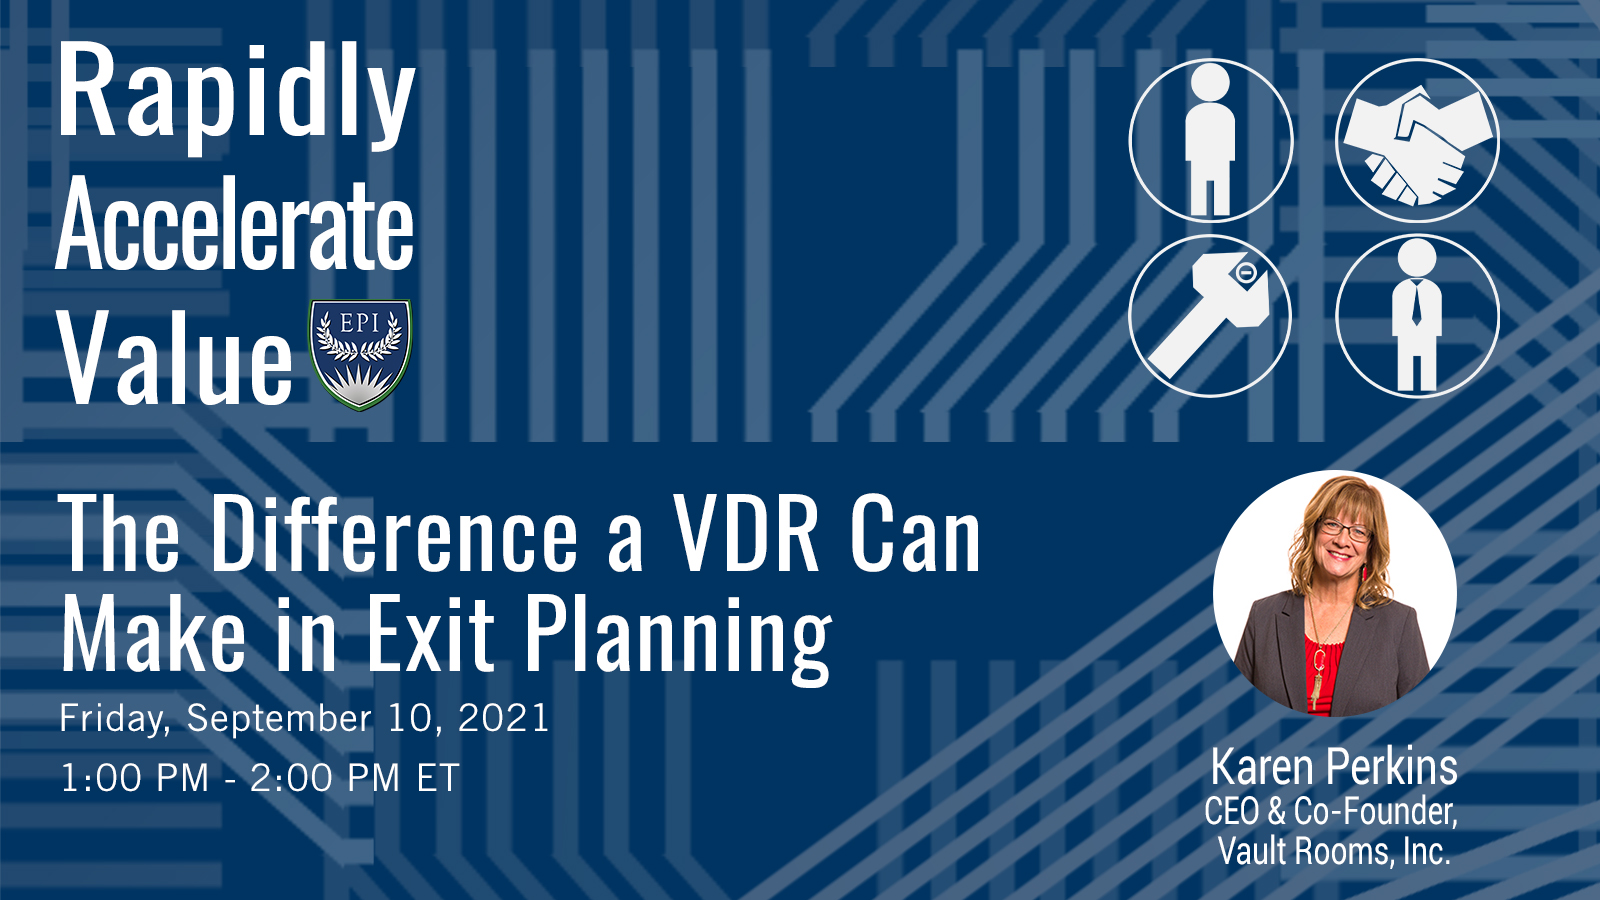 The Difference a VDR Can Make in Exit Planning